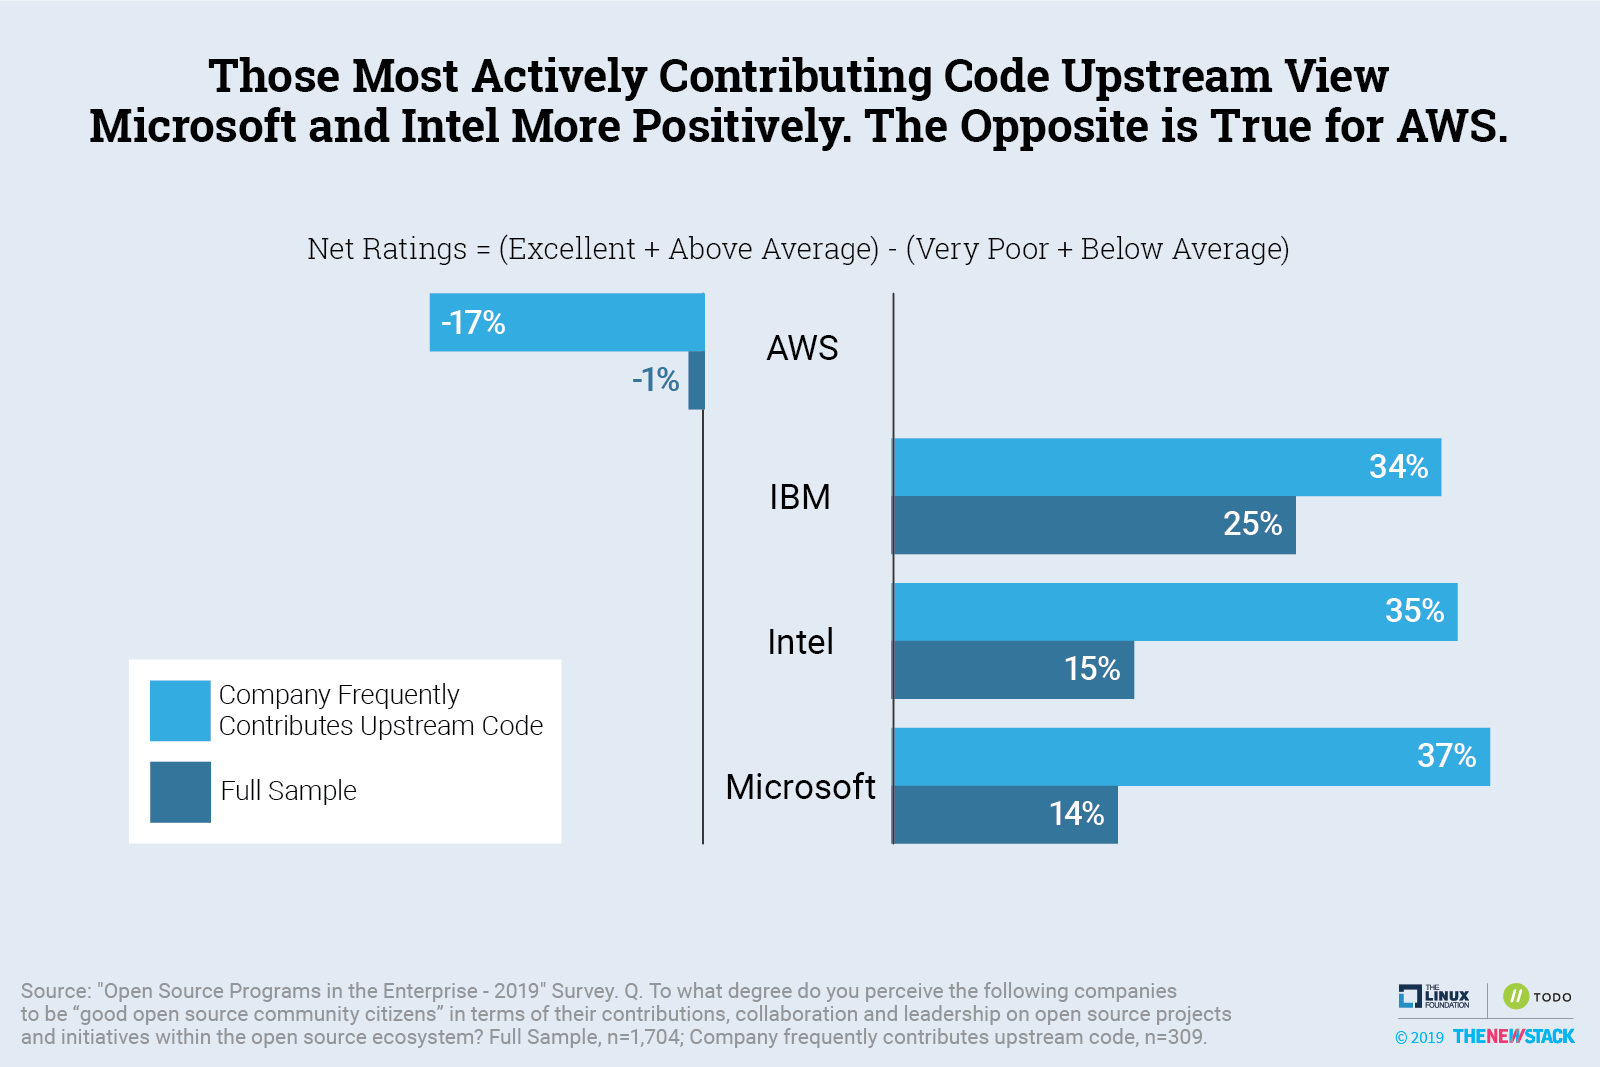 The Most Actively Contributing Code Upstream View Microsoft and Intel More Positively. The Opposite is True for AWS.